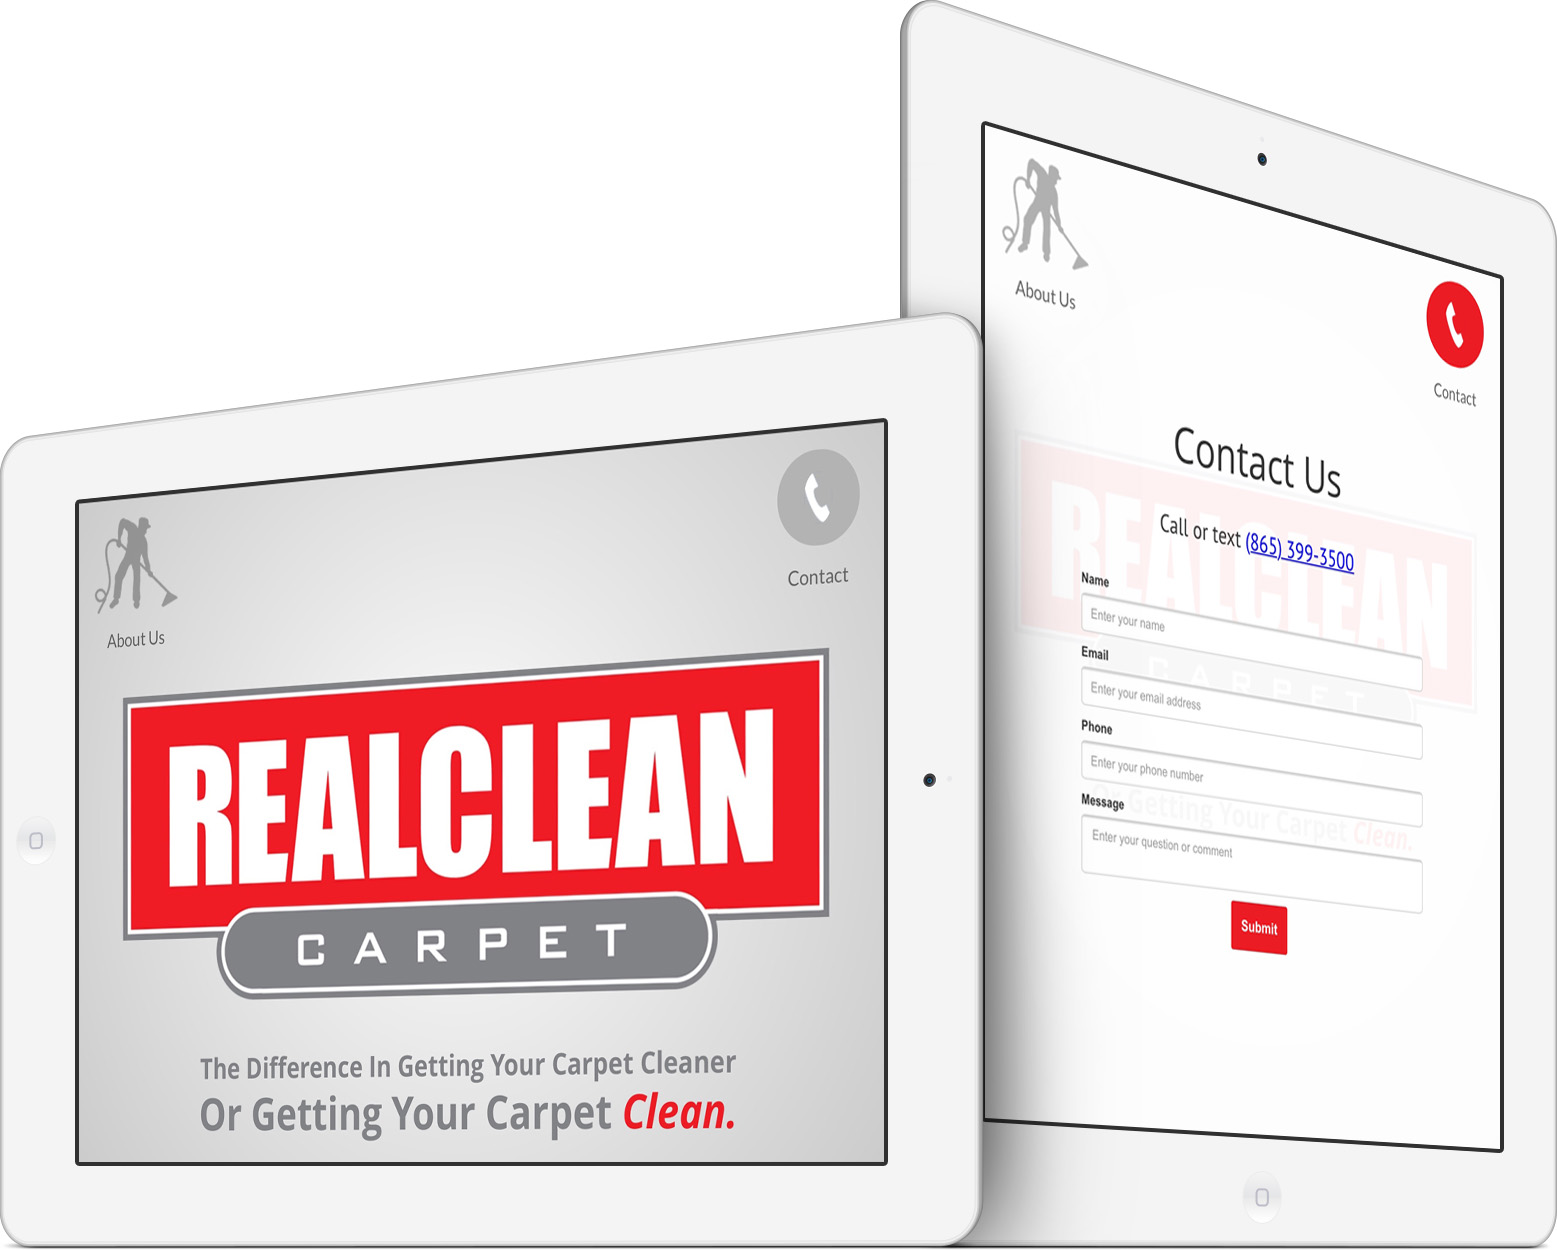 REALCLEAN Carpet Responsive Website Design